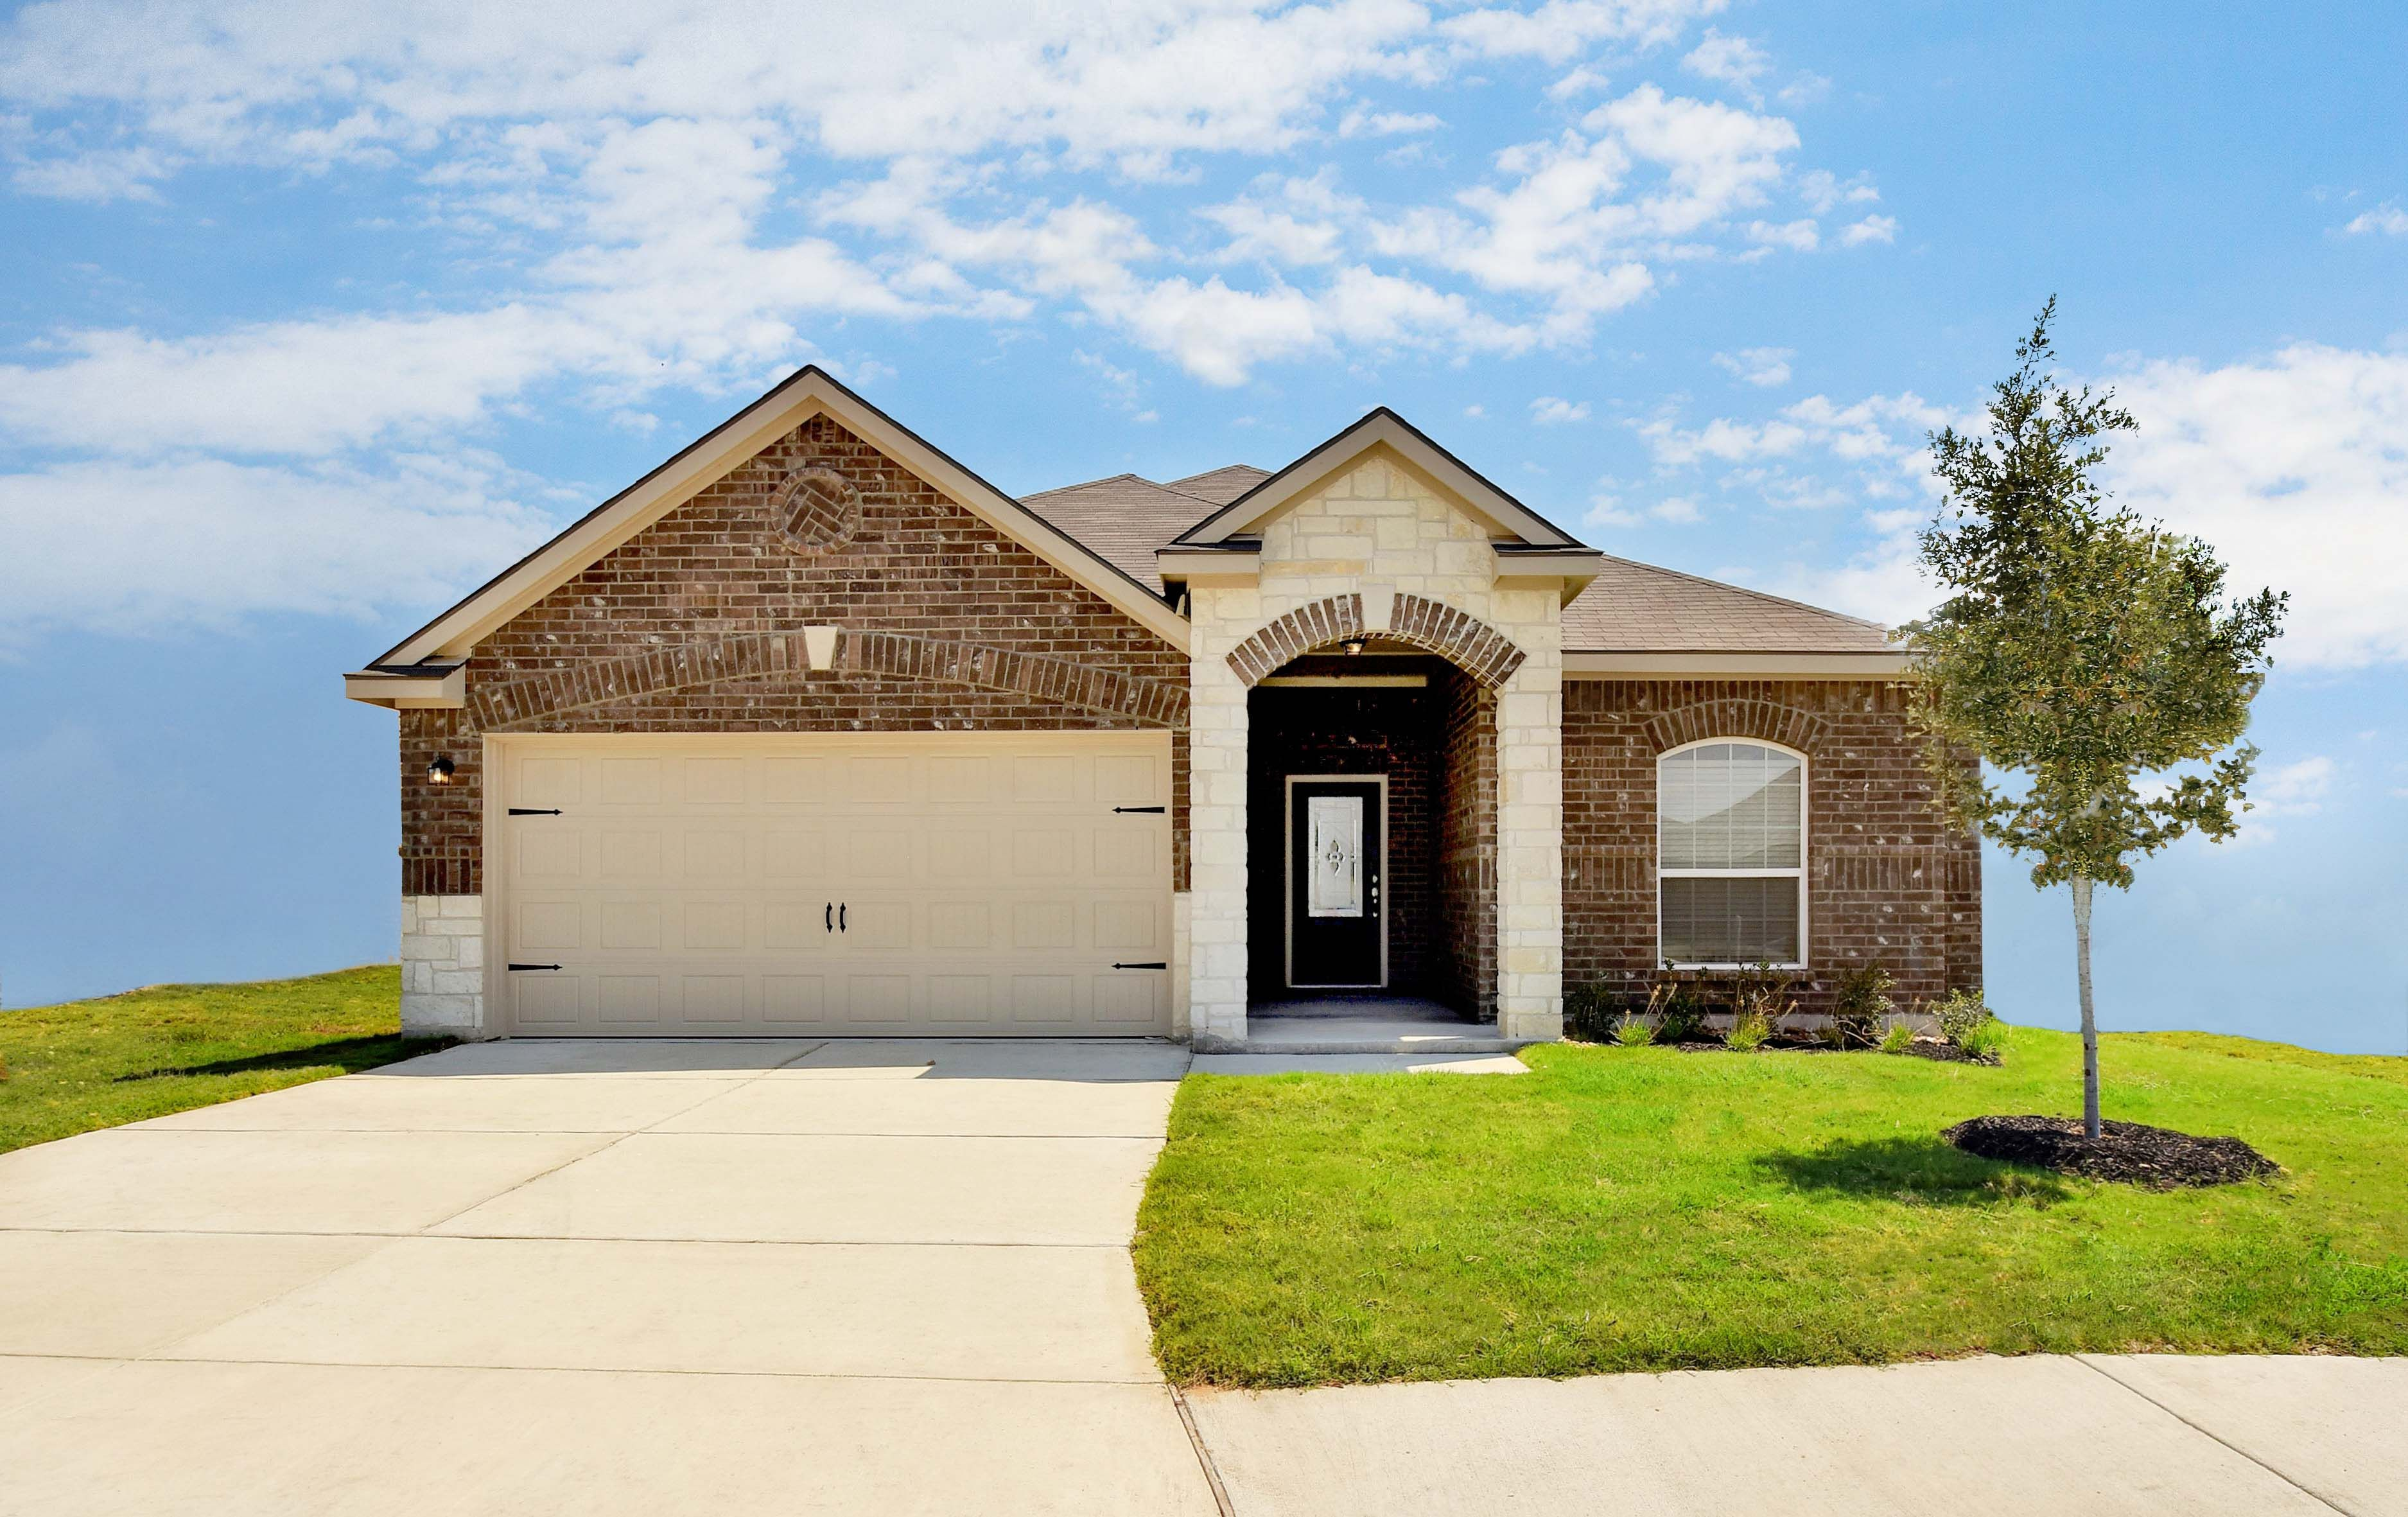 erie plan san antonio texas 78252 erie plan at luckey ranch by rh newhomesource com